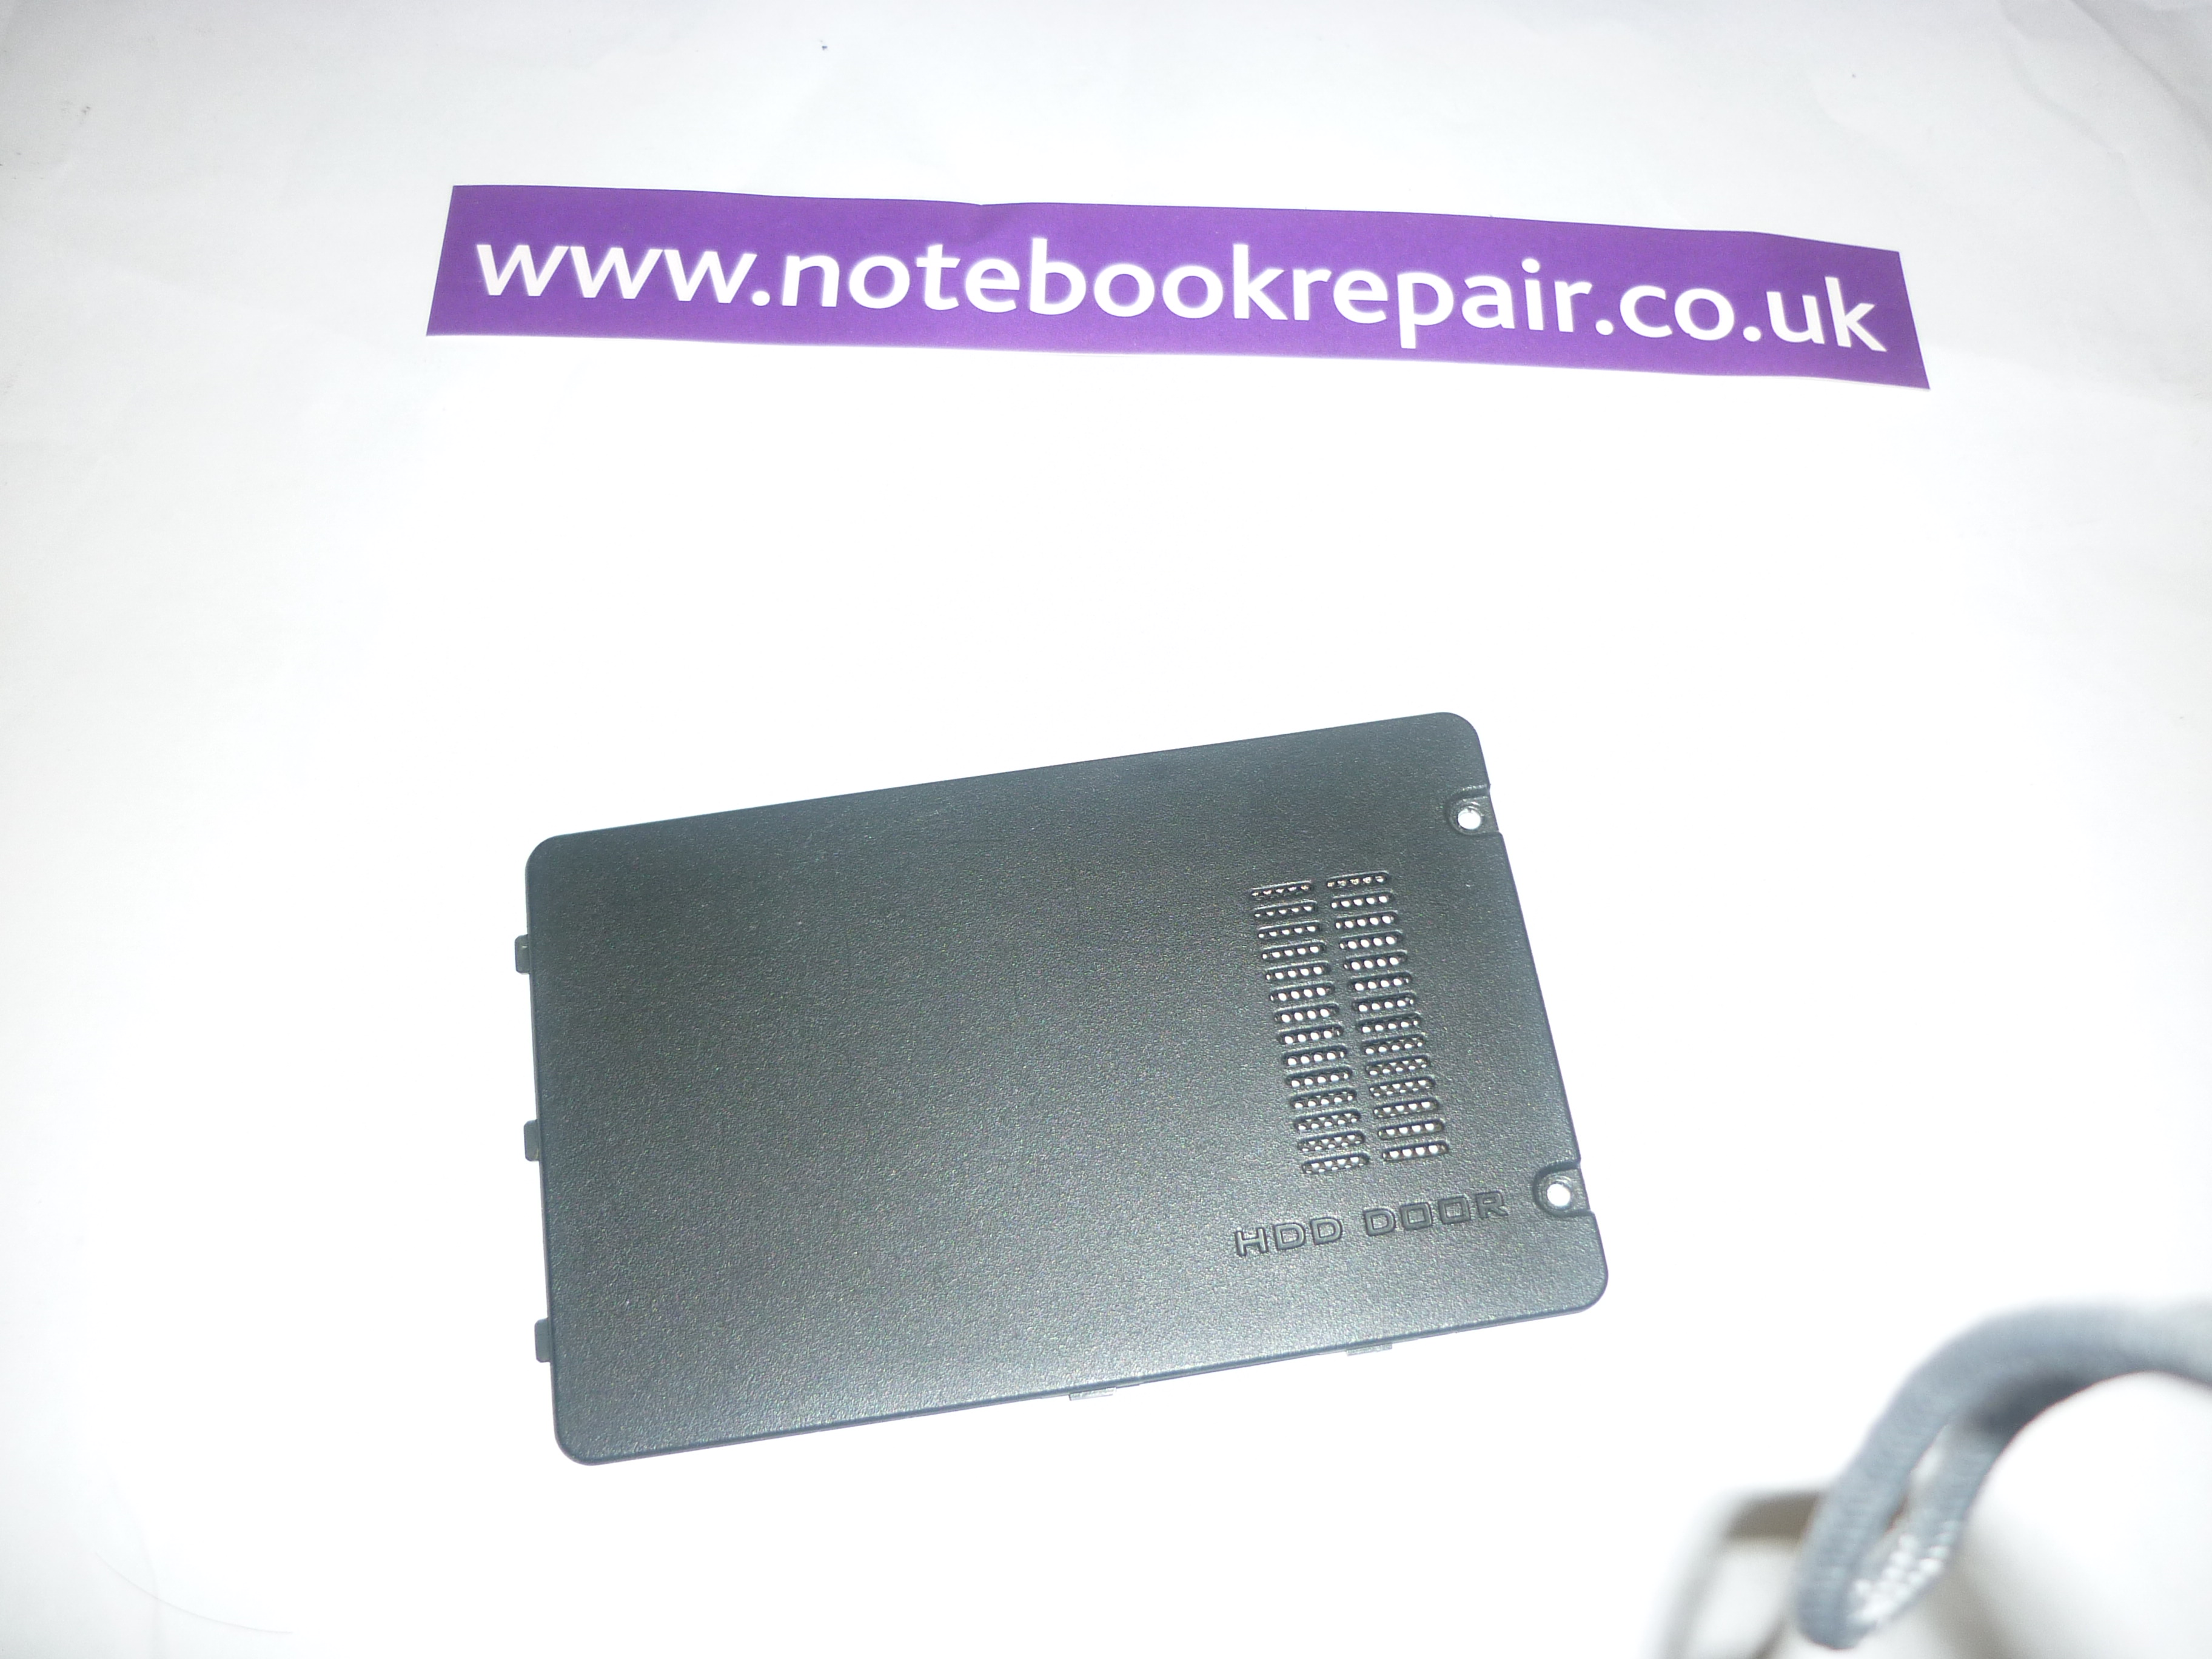 EVESHAM NOTEBOOK HDD DOOR COVER